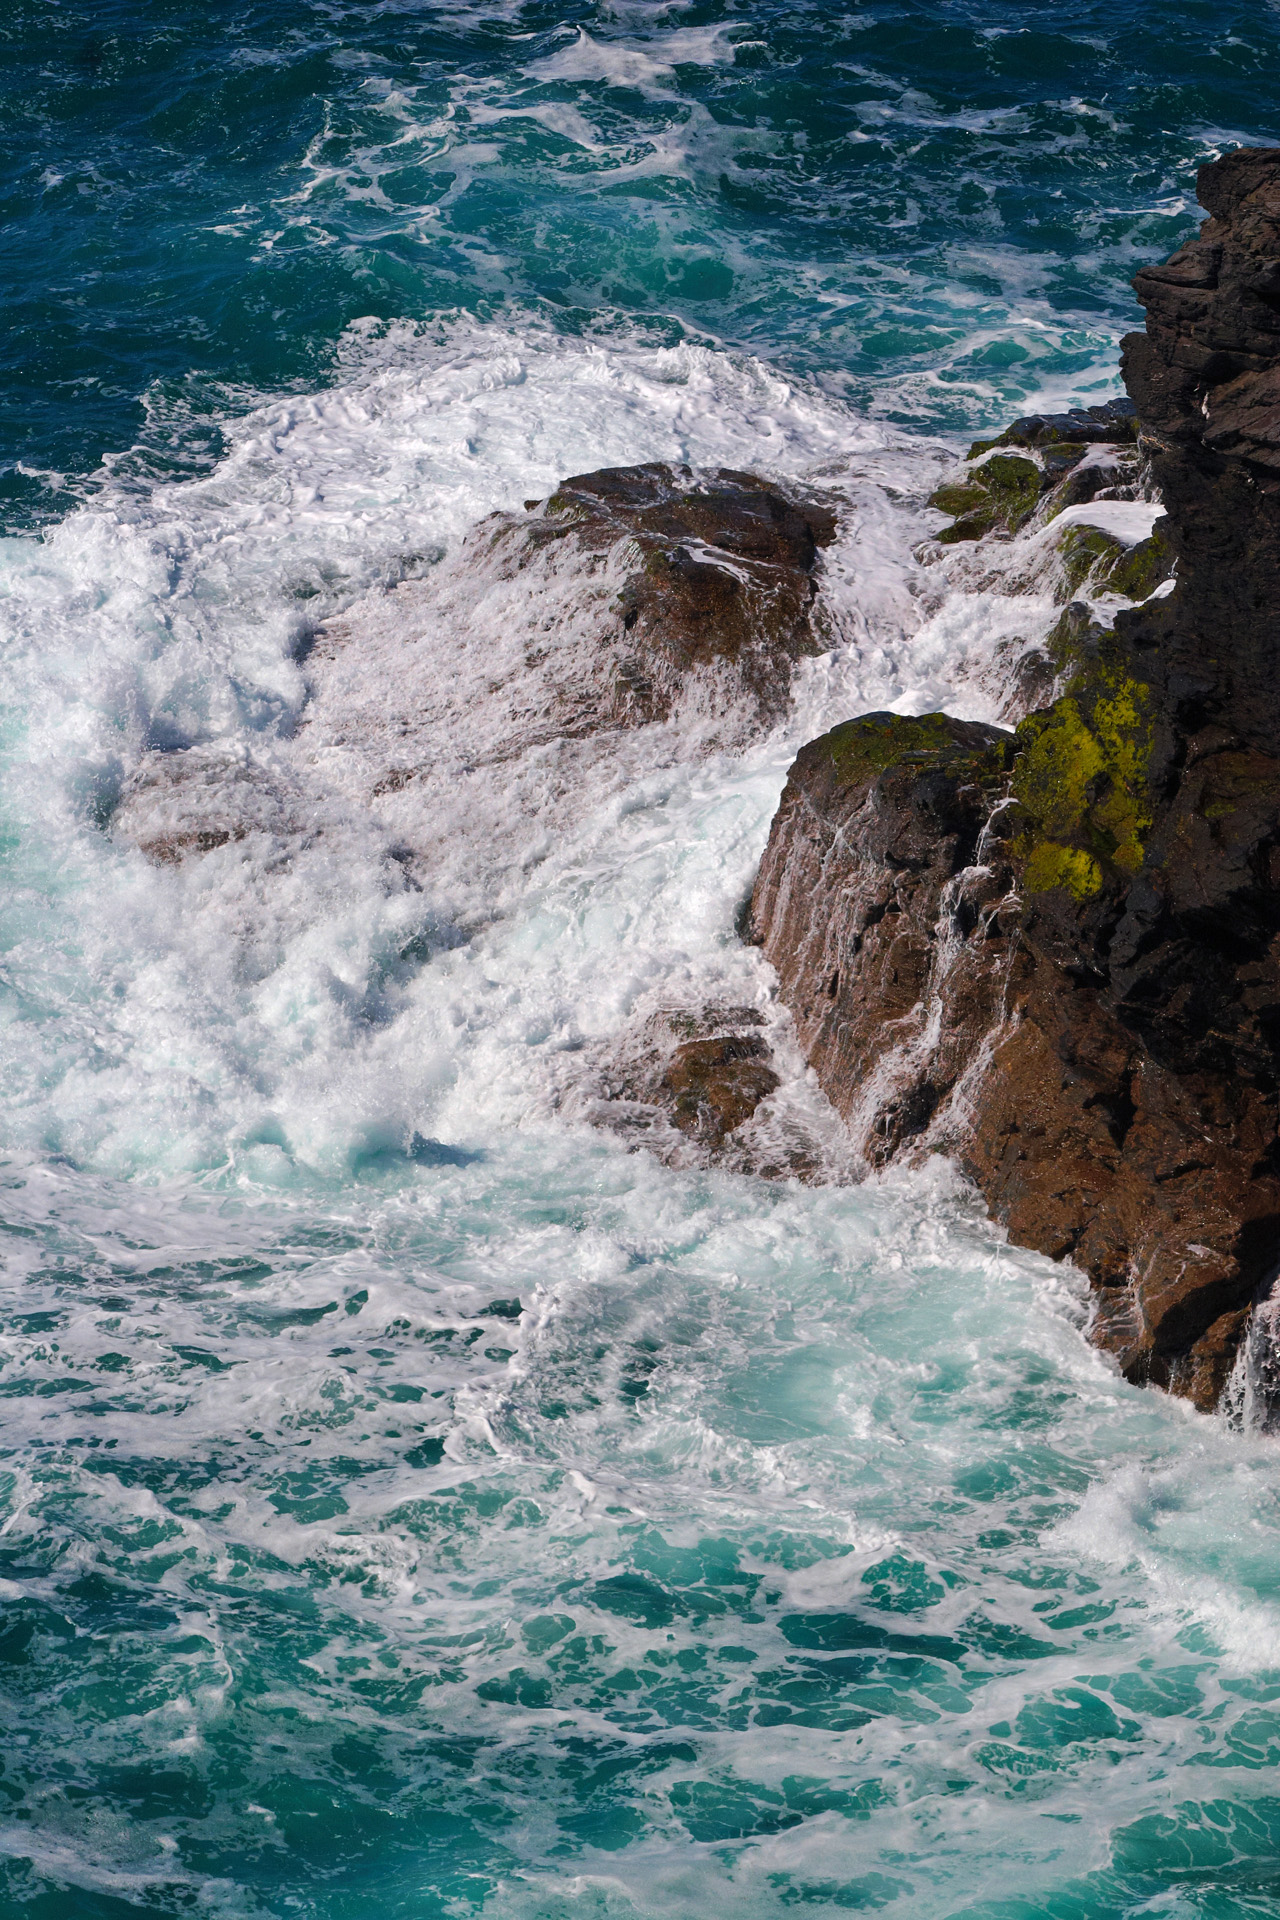 Waves breaking on the rocks at High Cove, Cornwall